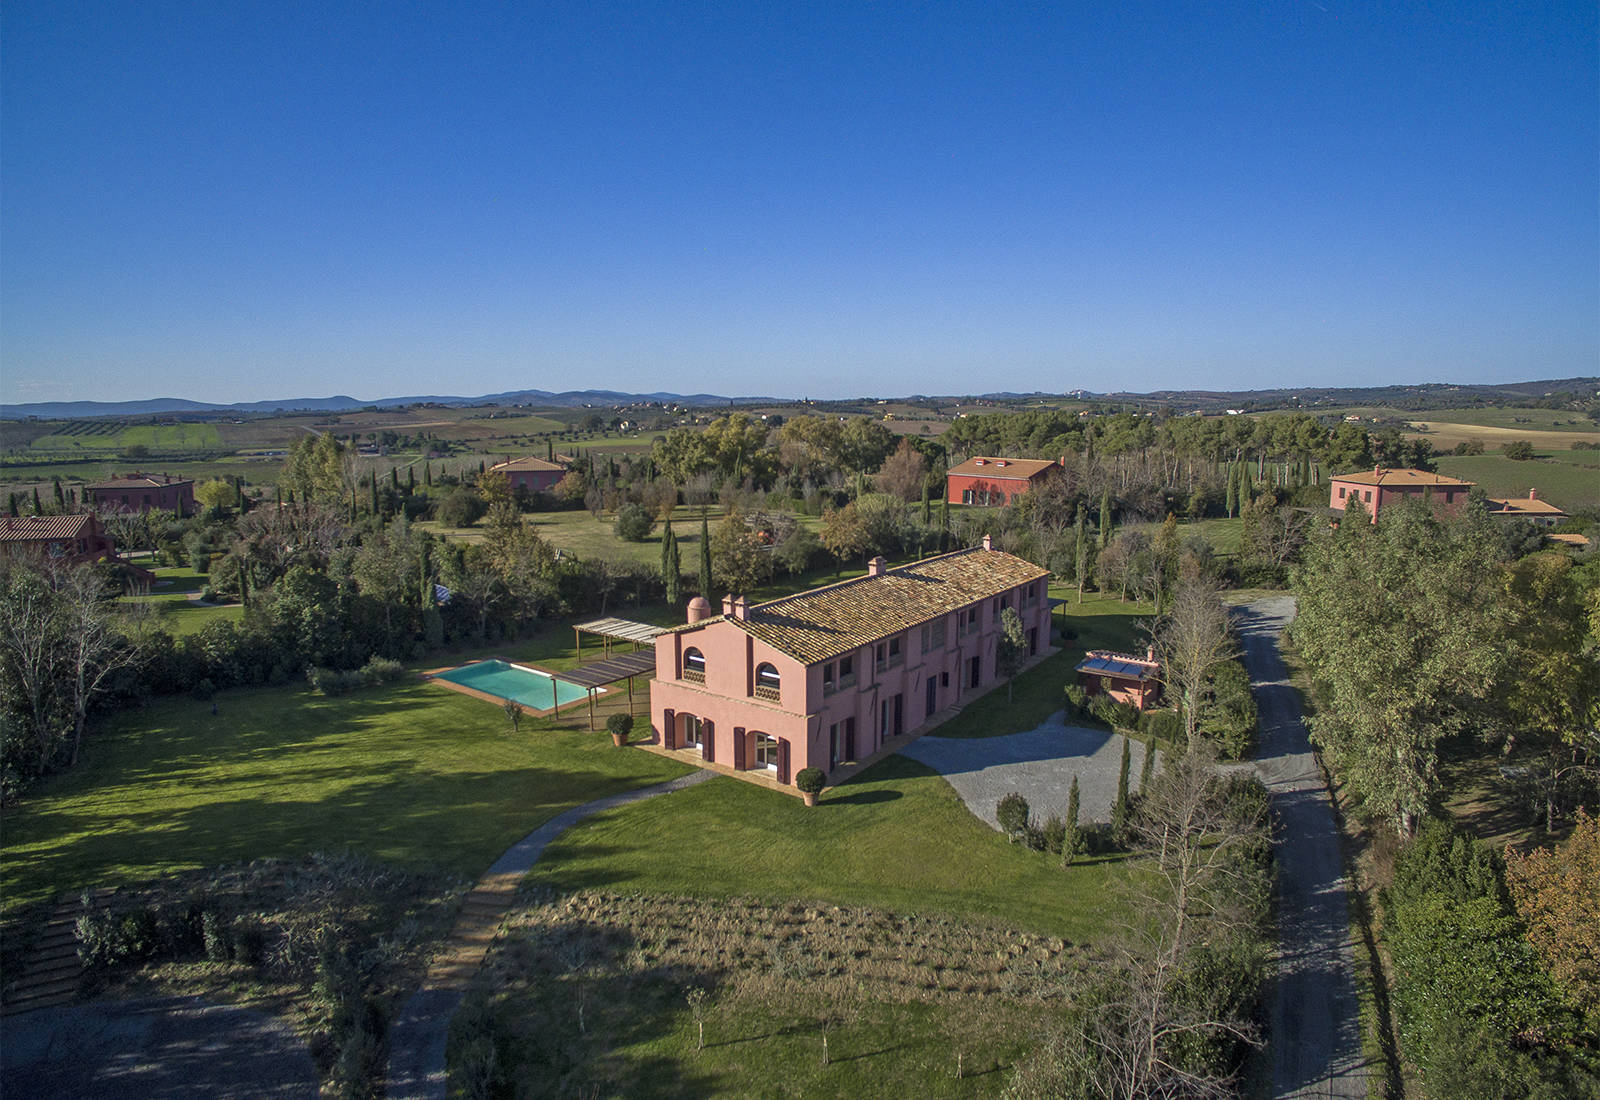 prestigious_real_estate_in_italy?id=2268